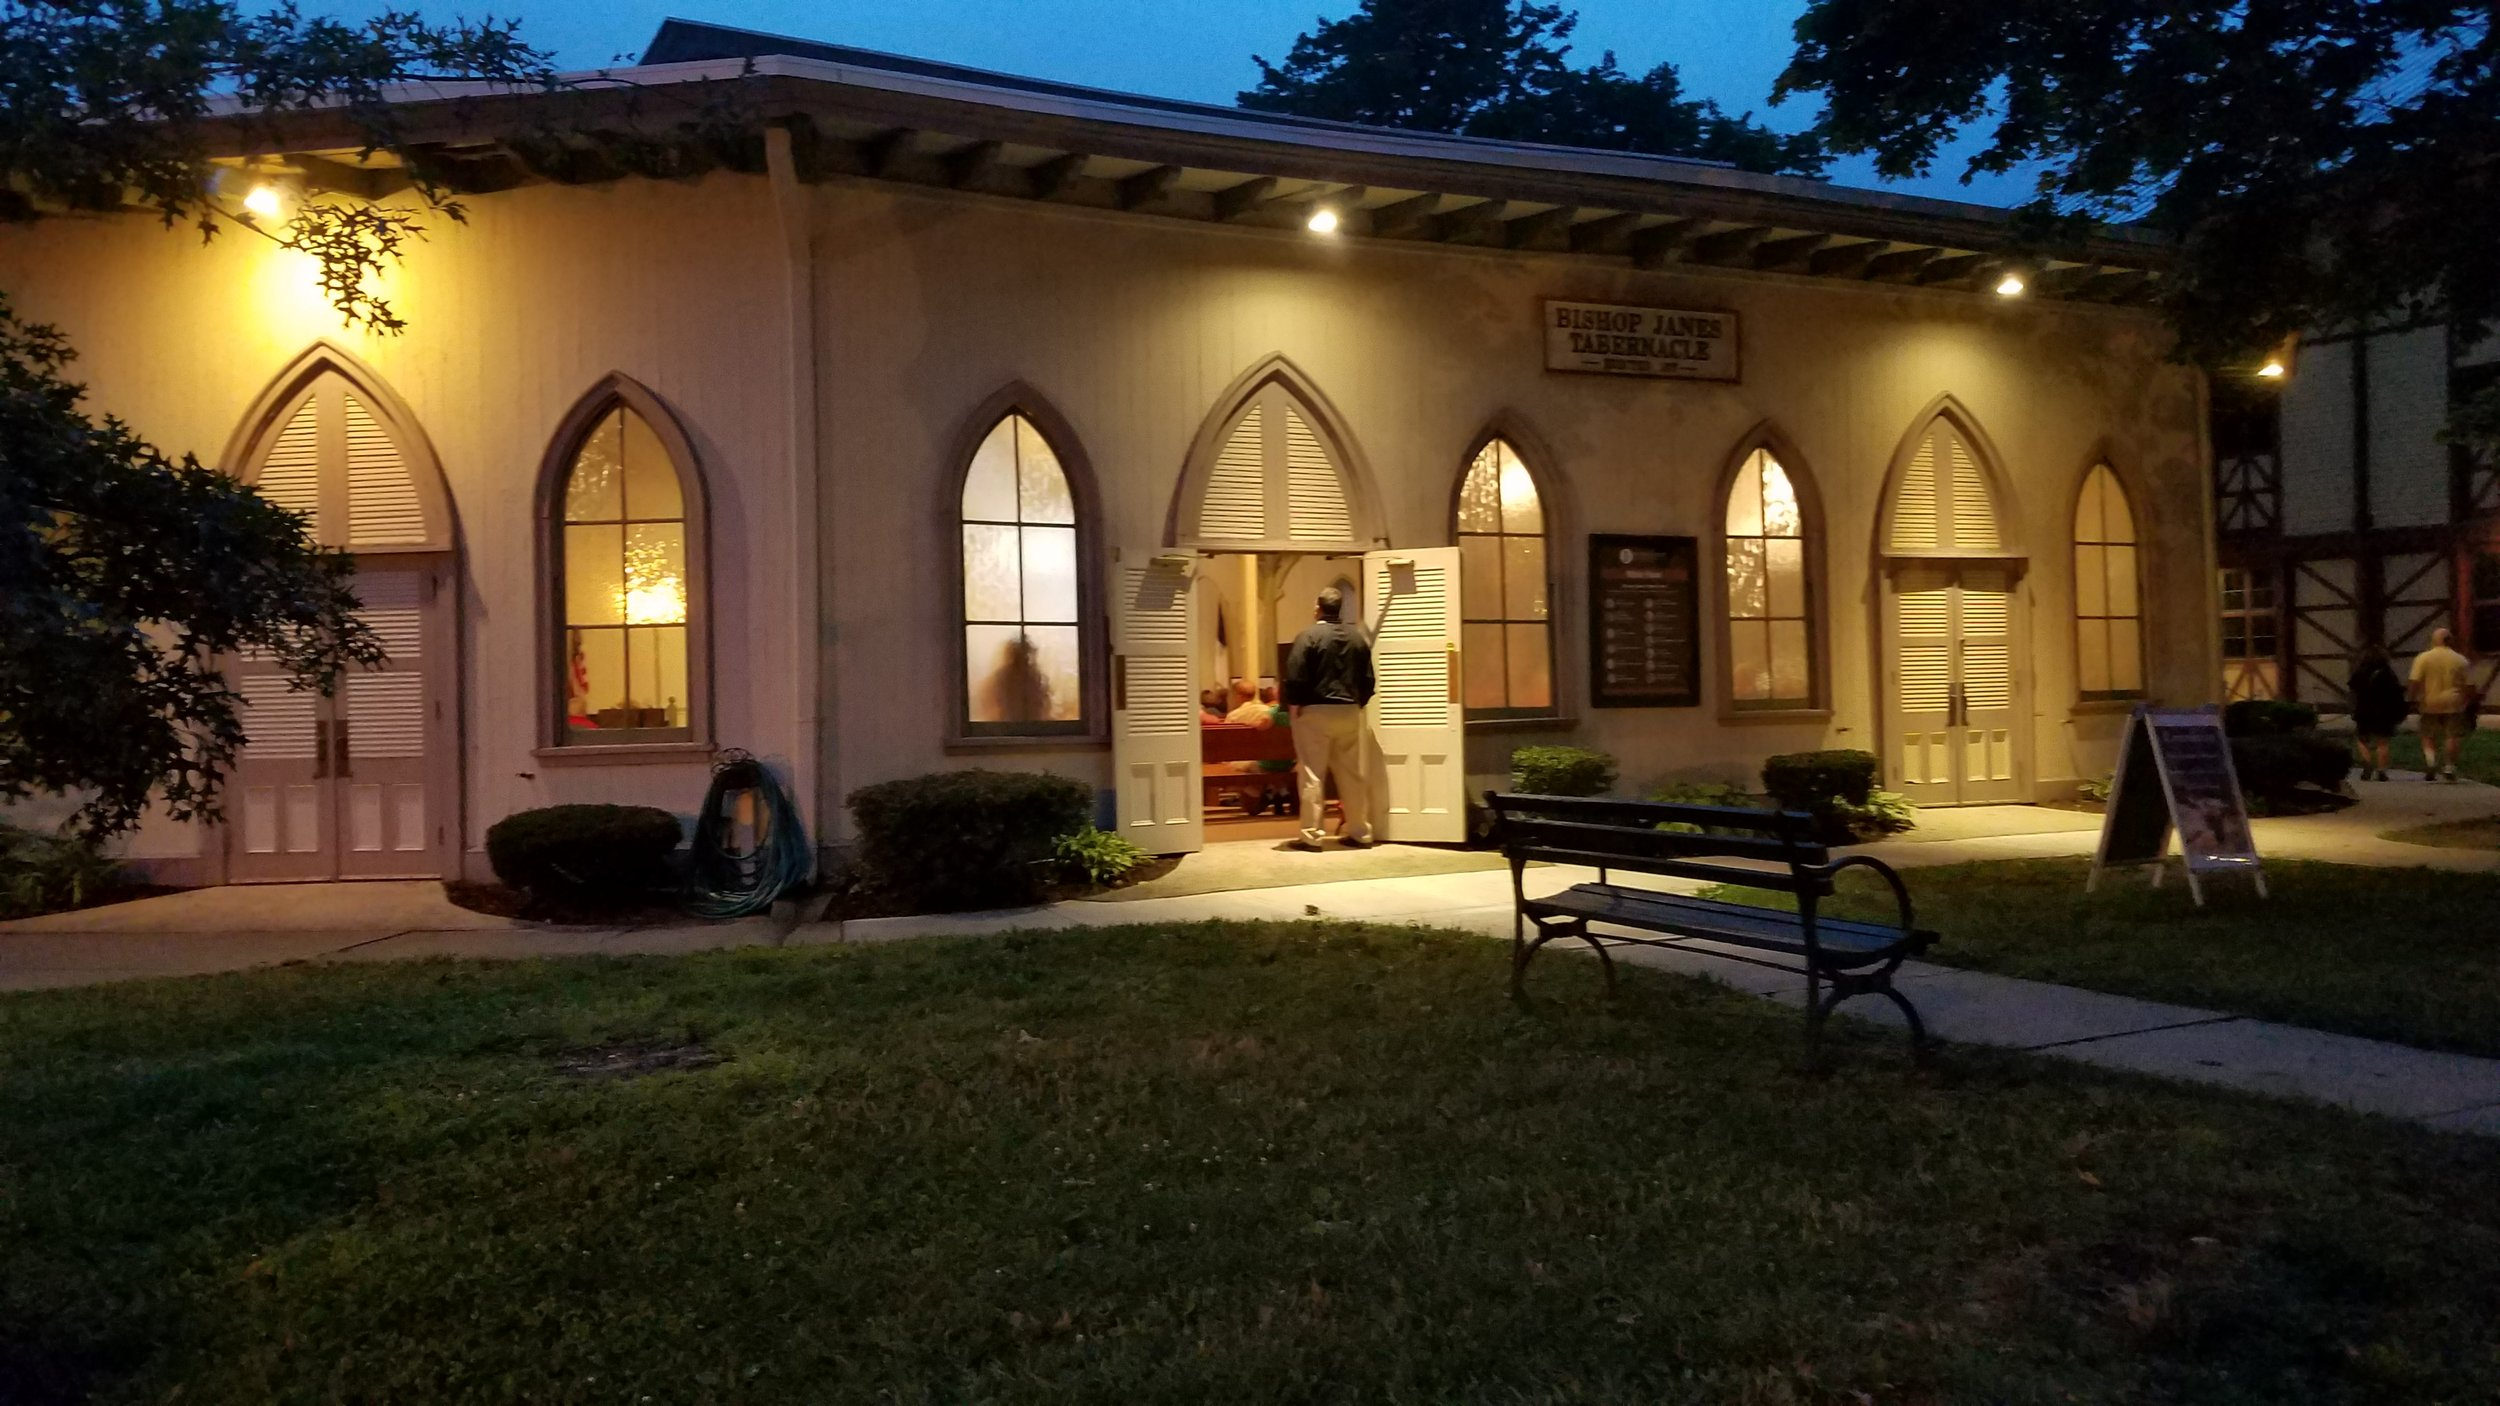 Tabernacle at Night 2017-08-07 20.18.41.jpg